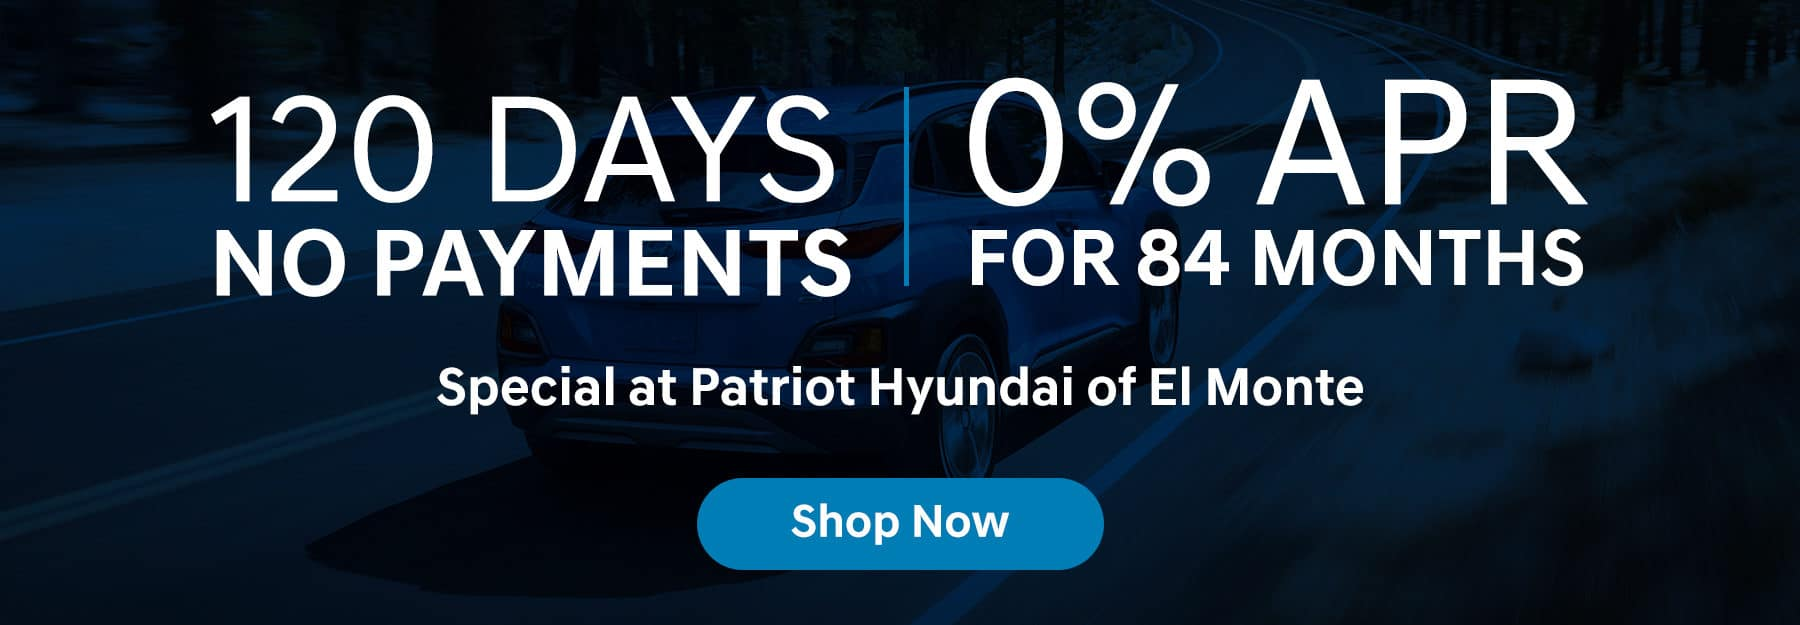 120 day 0% APR no payments for 84 months